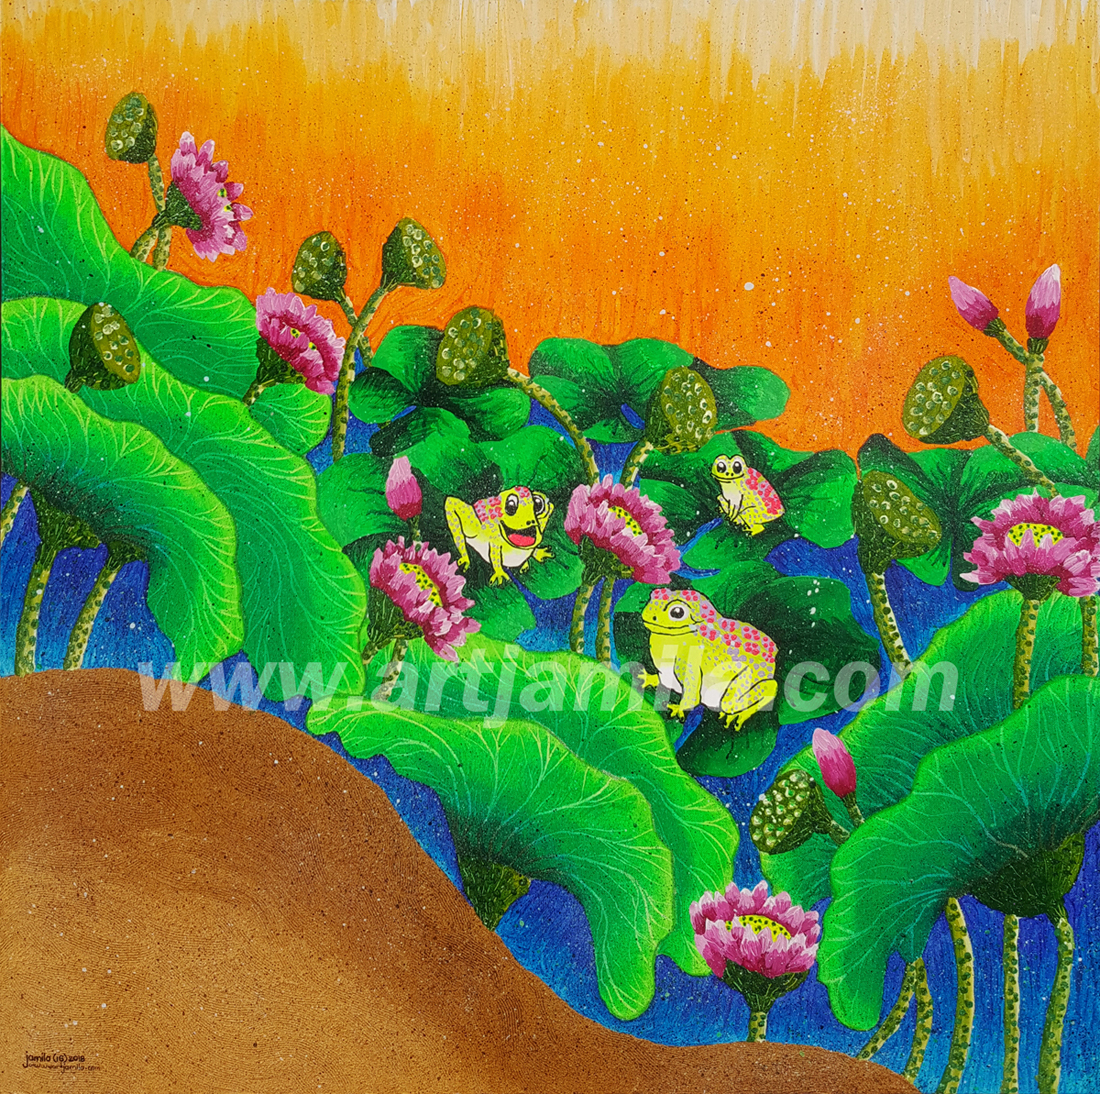 Landscape Lotus Series 7 WATERMARK (3x3)